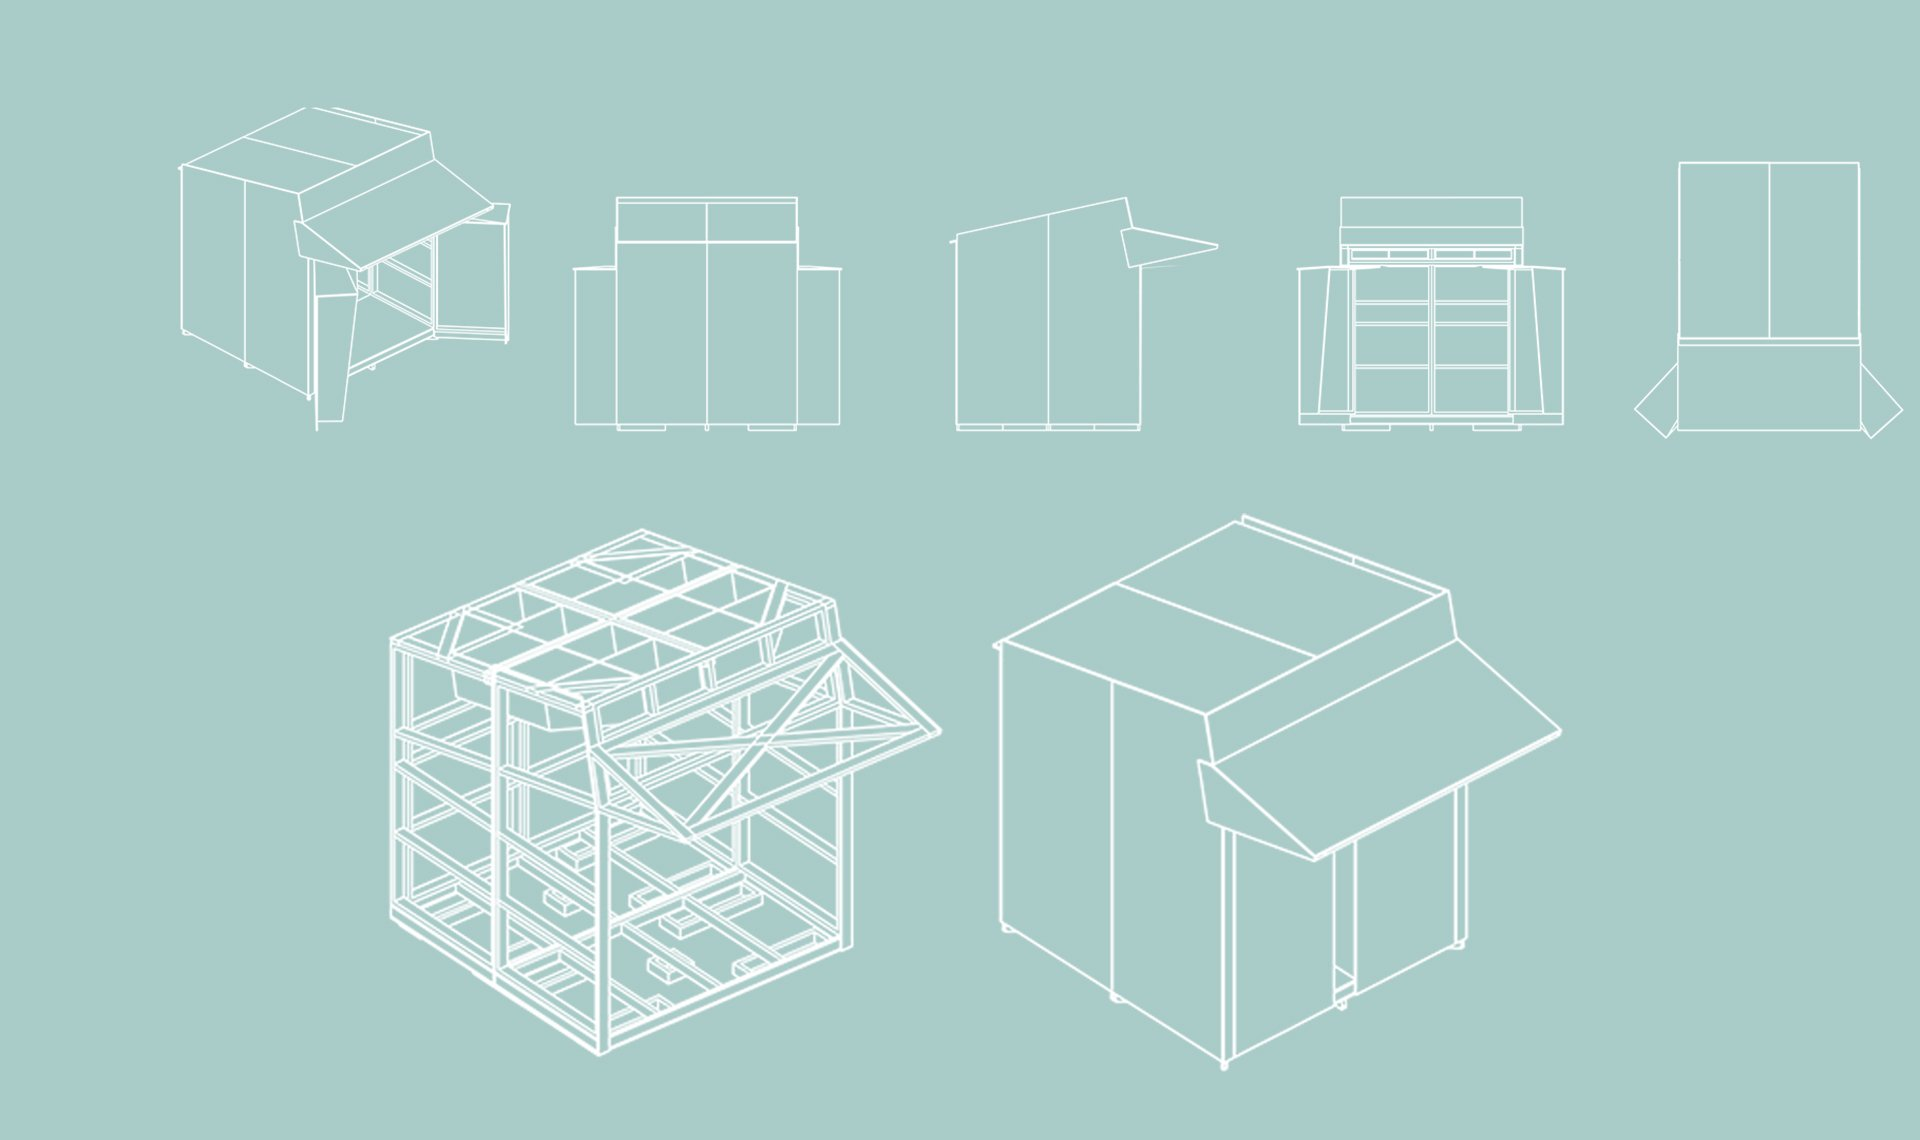 BoxSmall designs for boxes that loom like little birds